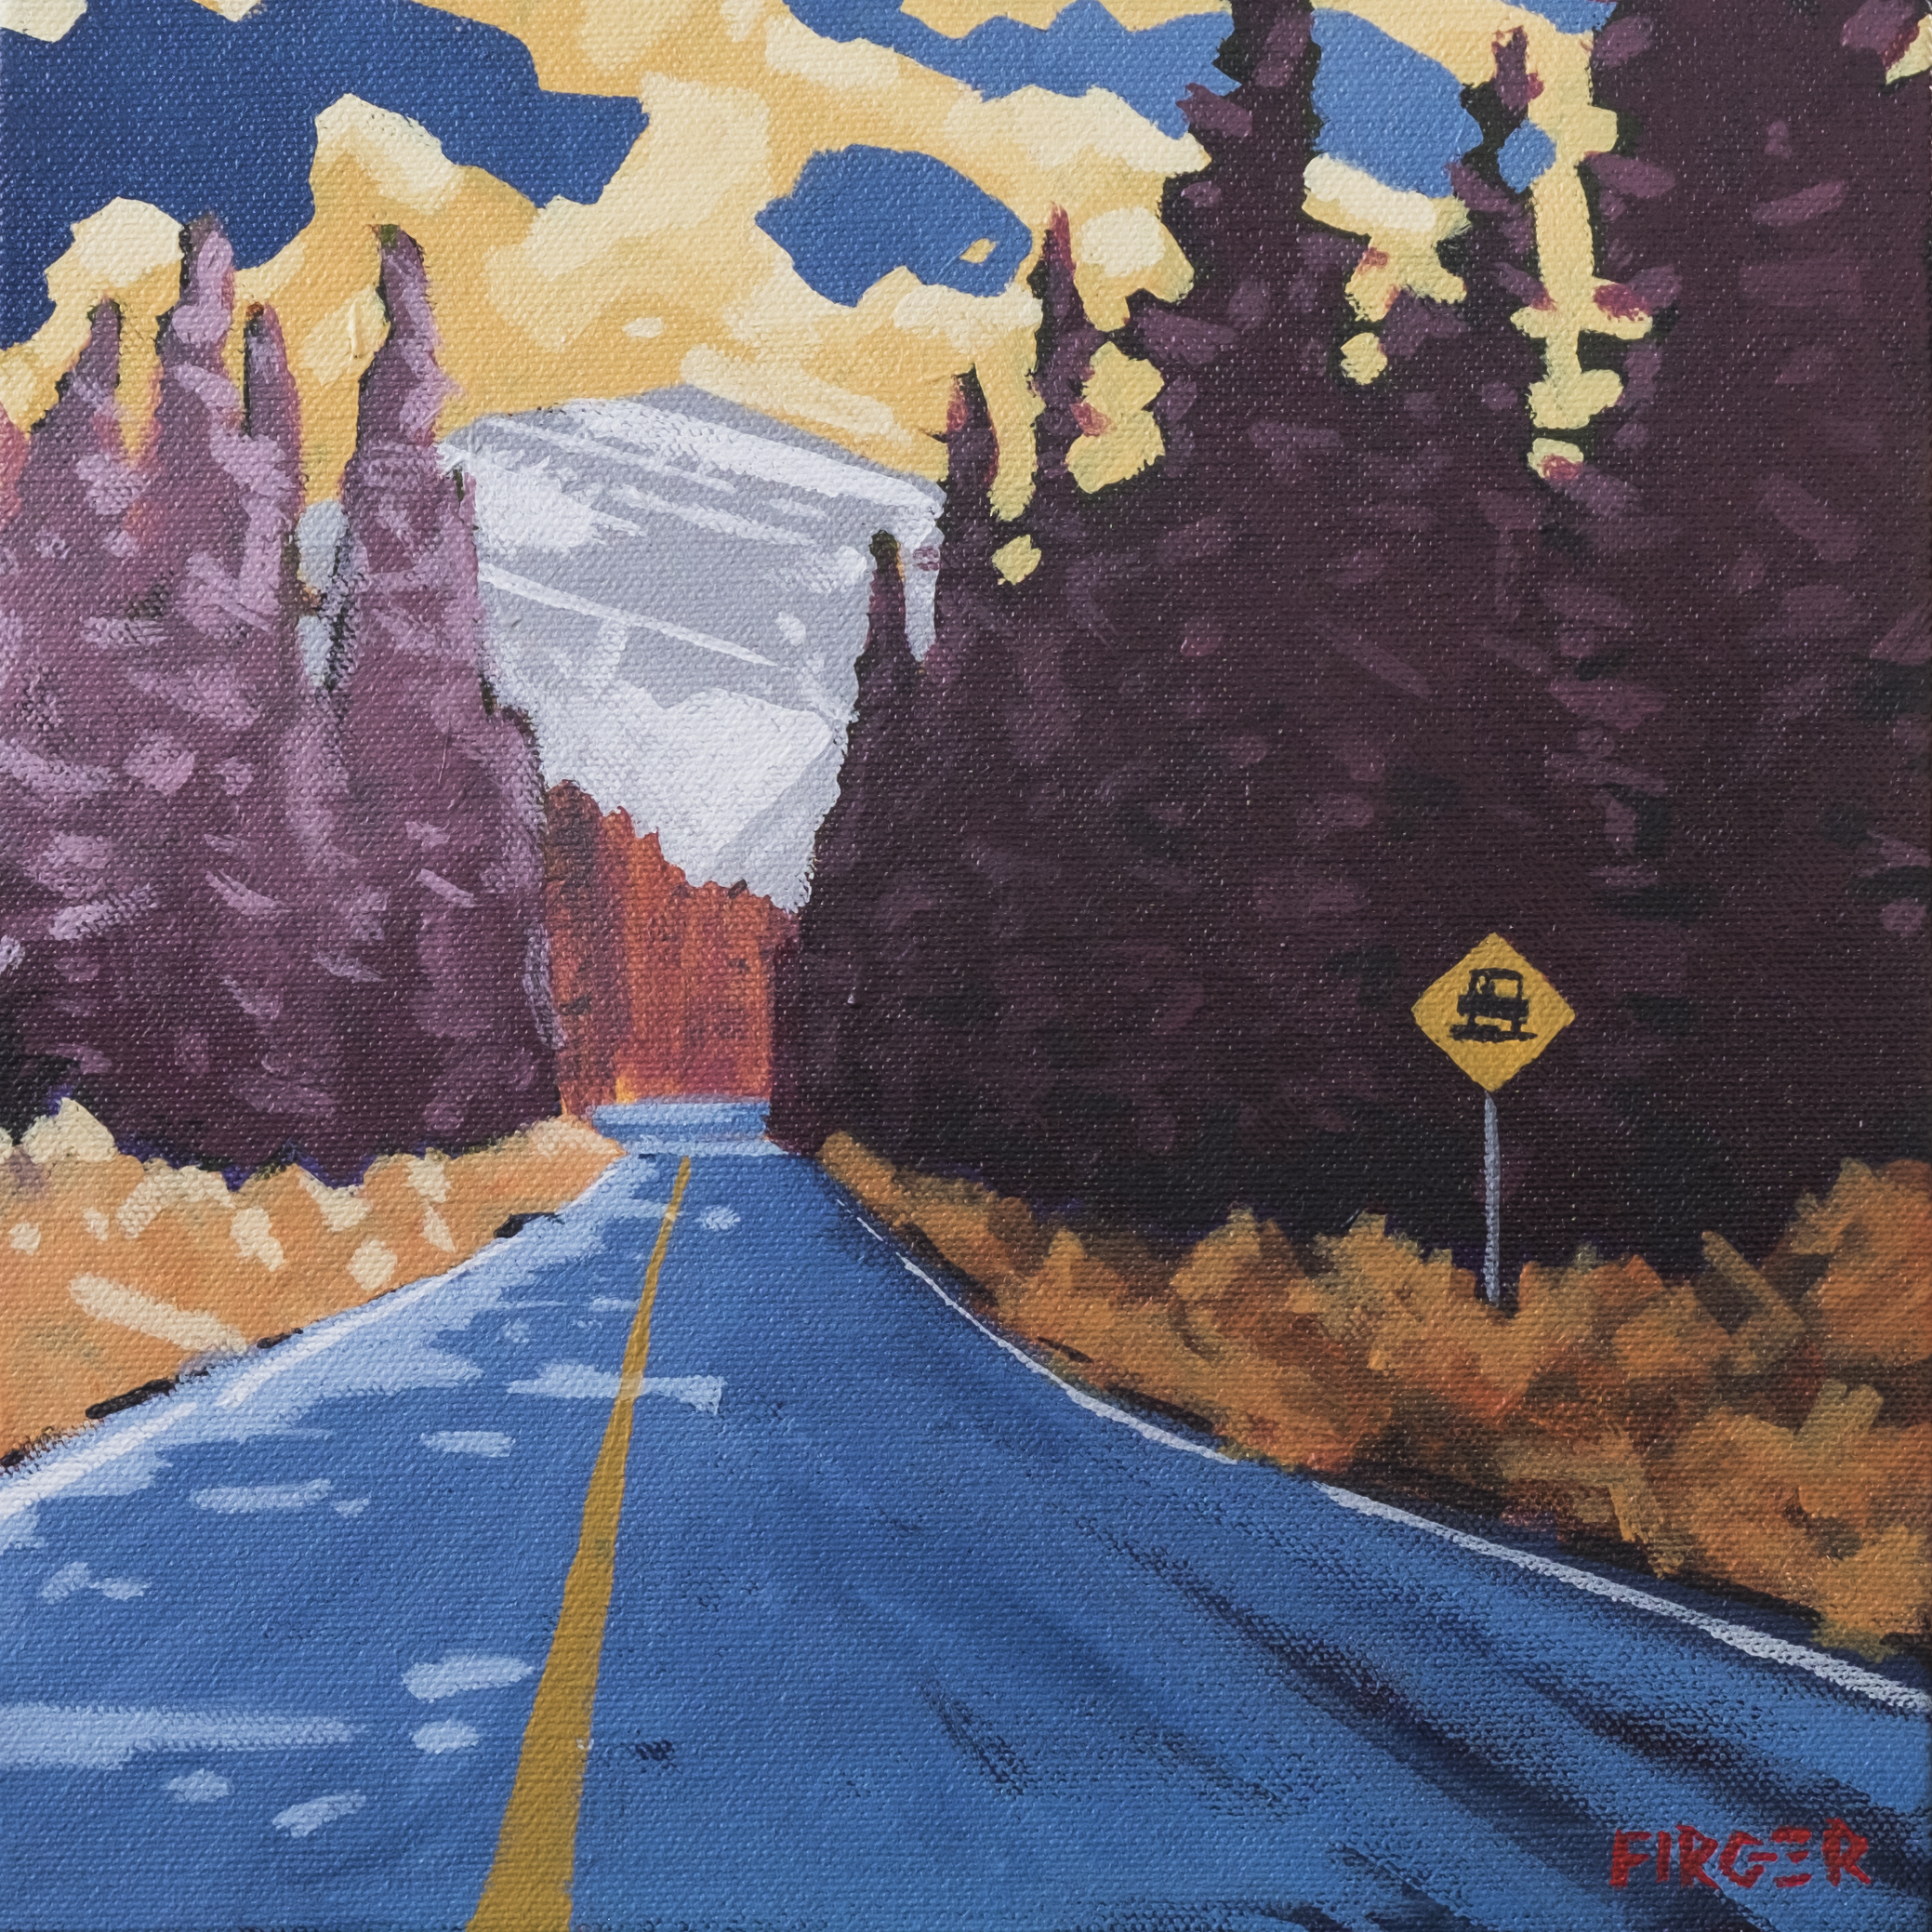 The Road to Mt Edith Cavell - 10 x 10, Acrylic on Canvas (SOLD)